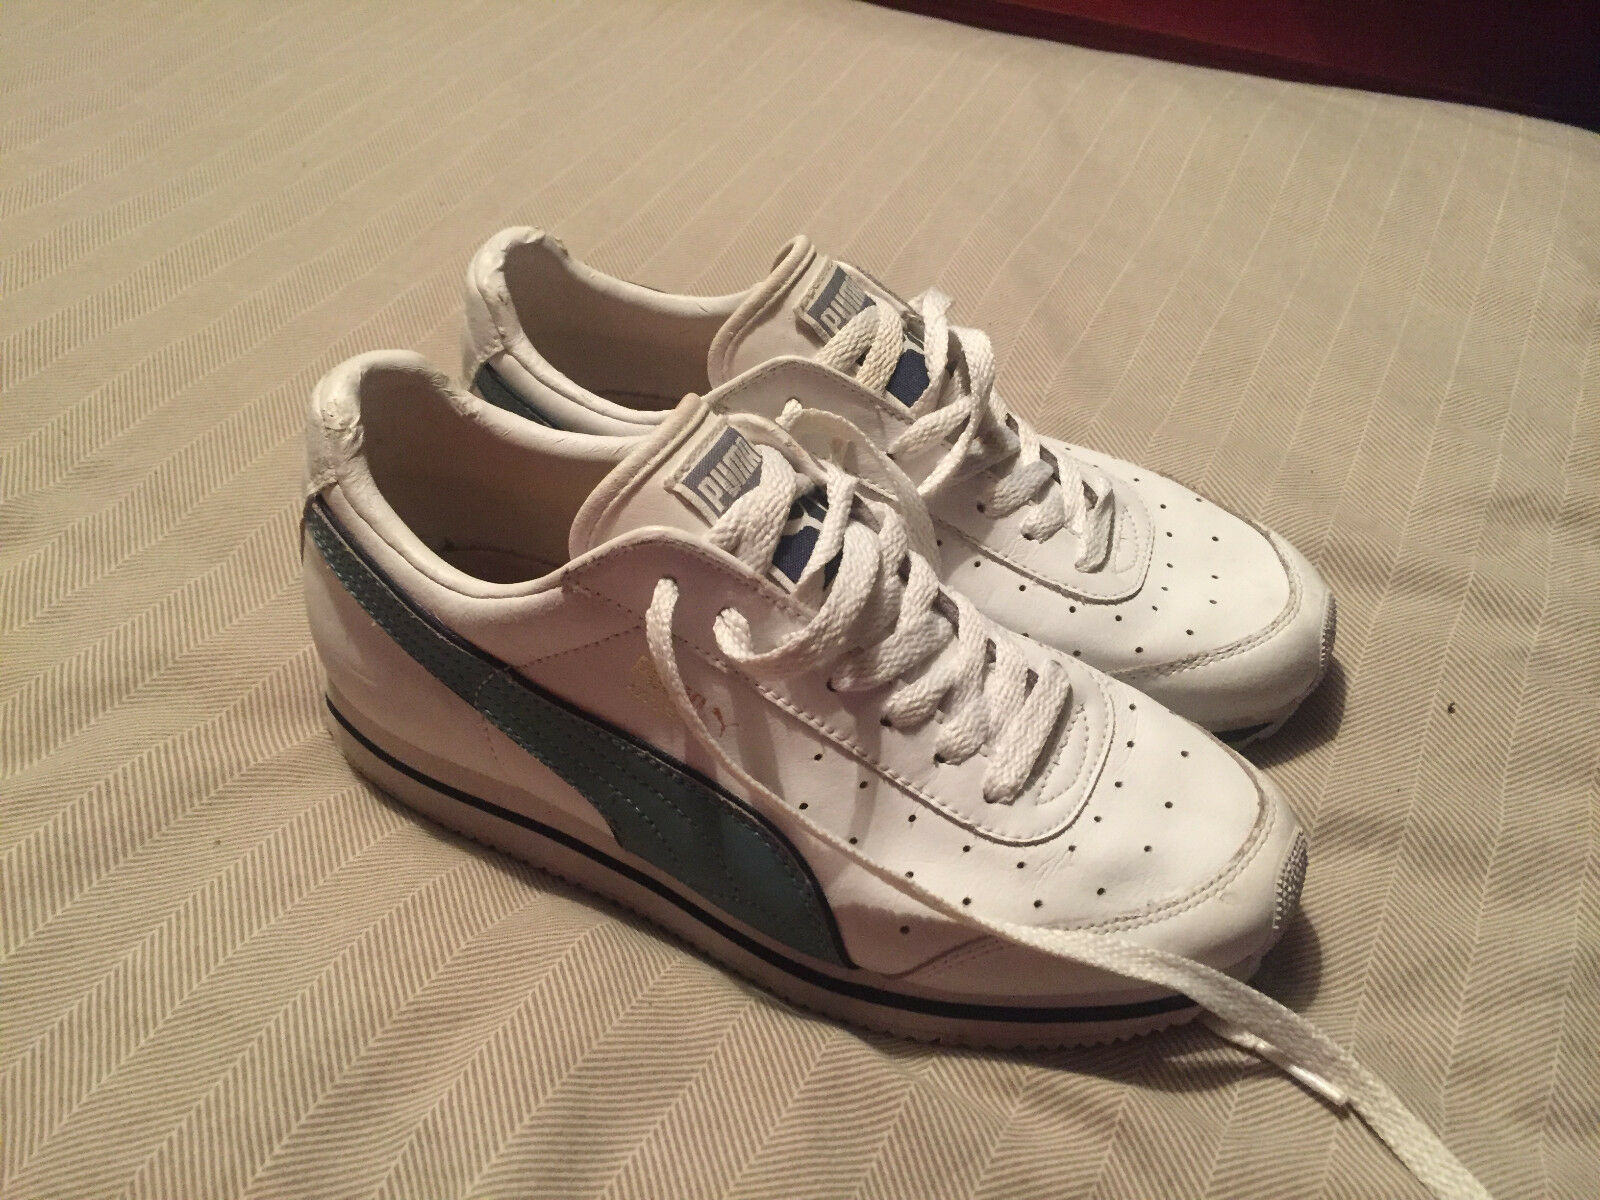 Puma Azzuro White/Blue Leather Trainers Comfortable Comfortable and good-looking